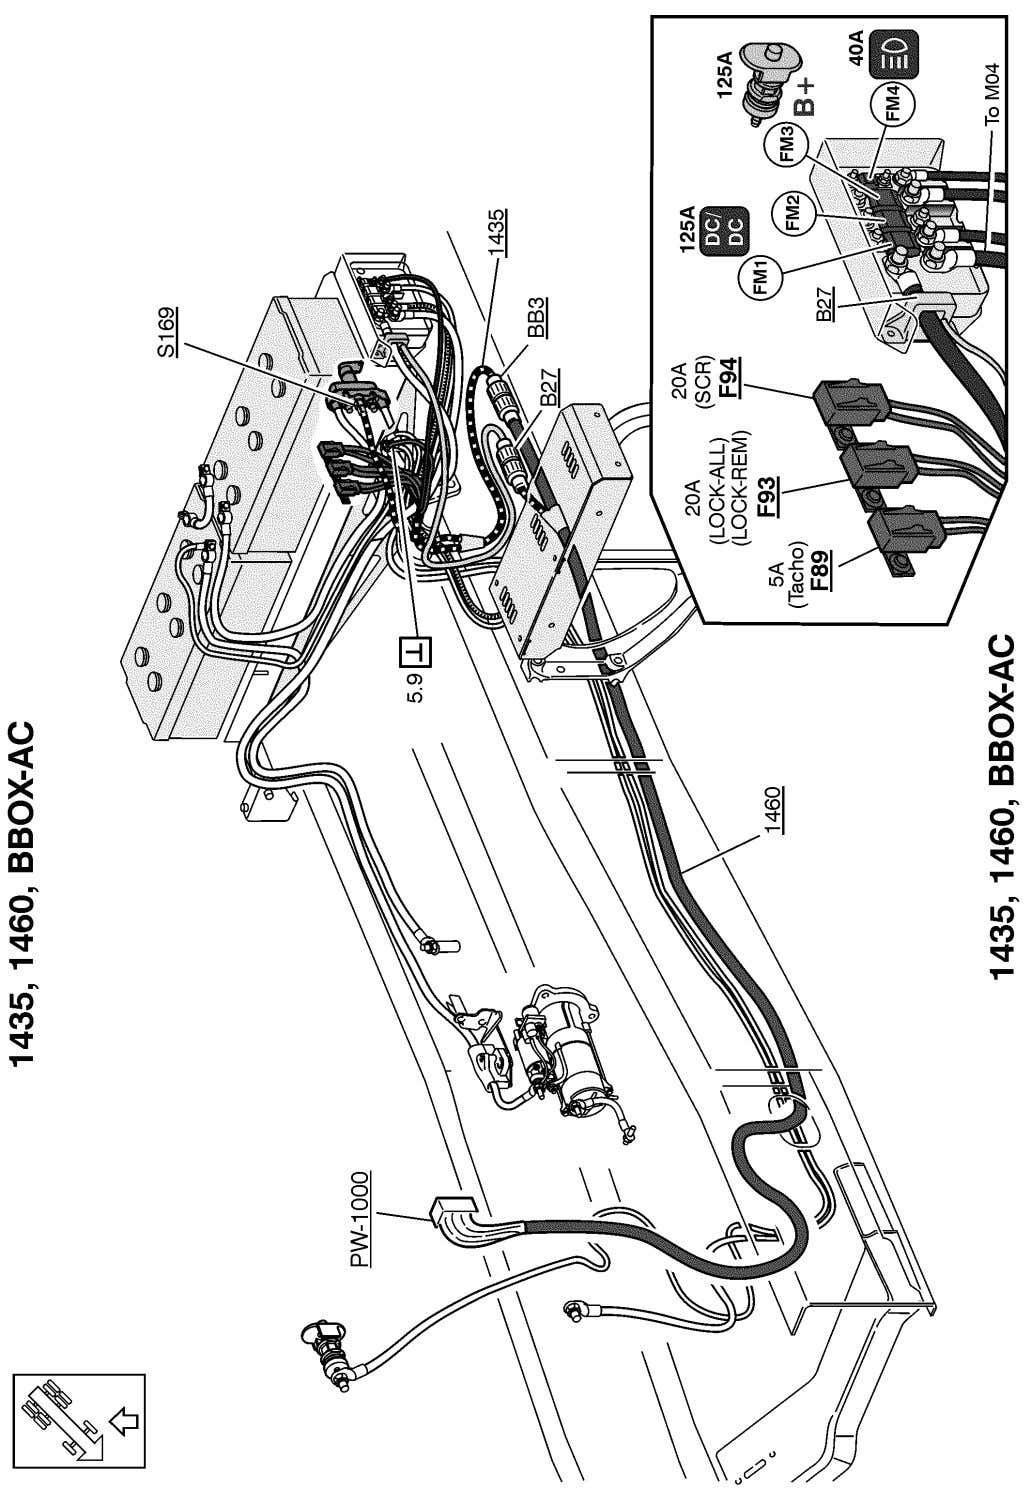 T3020633 Wiring diagram Page 205 (298)